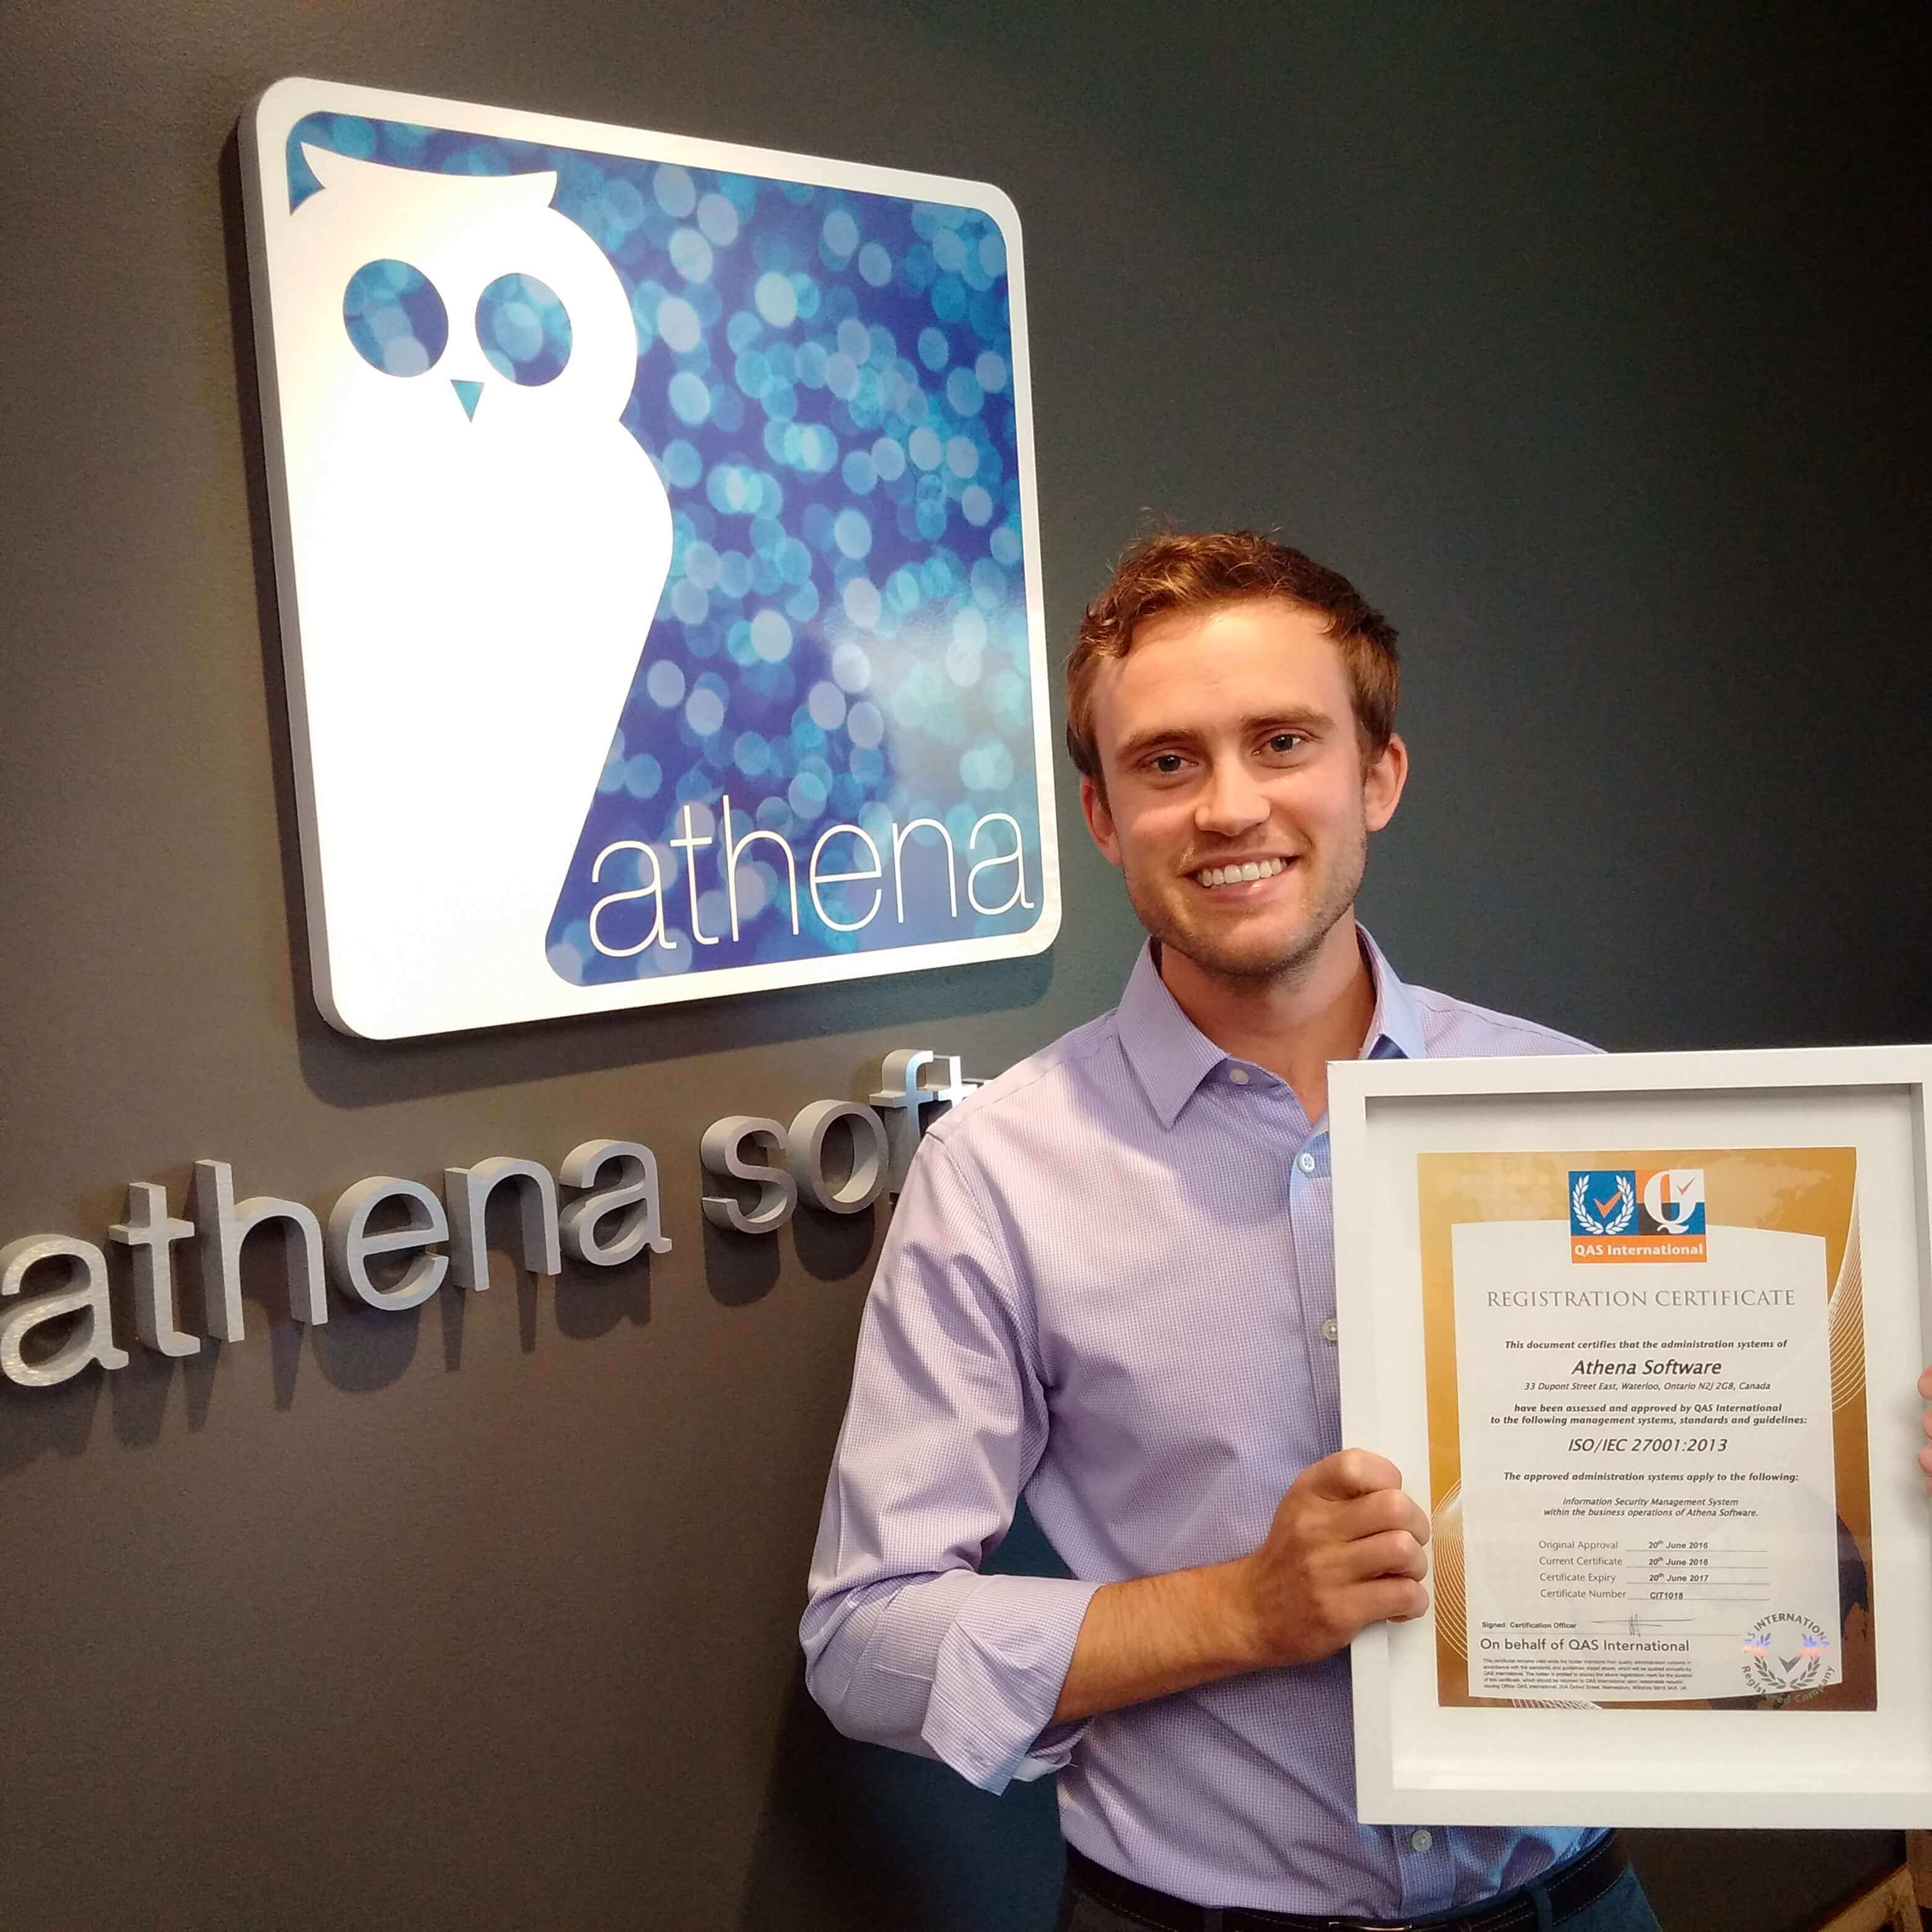 athena team member with iso certificate